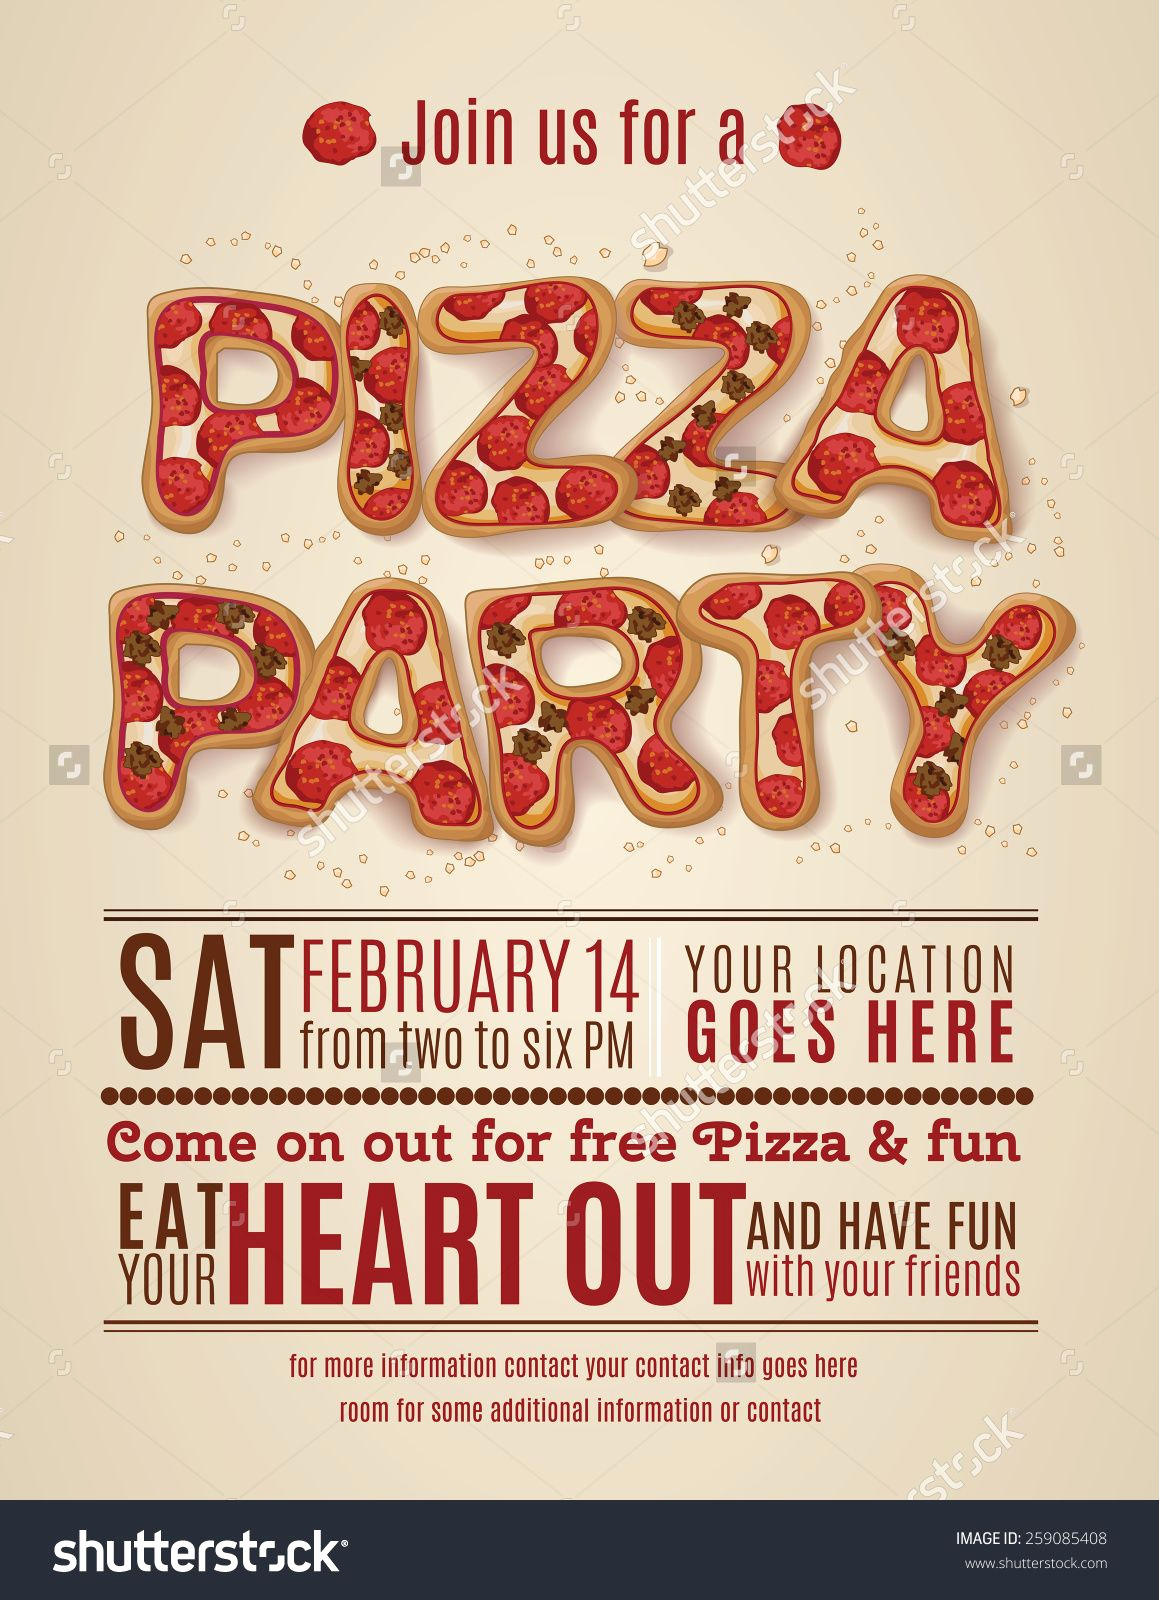 Pizza Party Invitation Template Unique Pizza Party Invitation Template Free Invitation